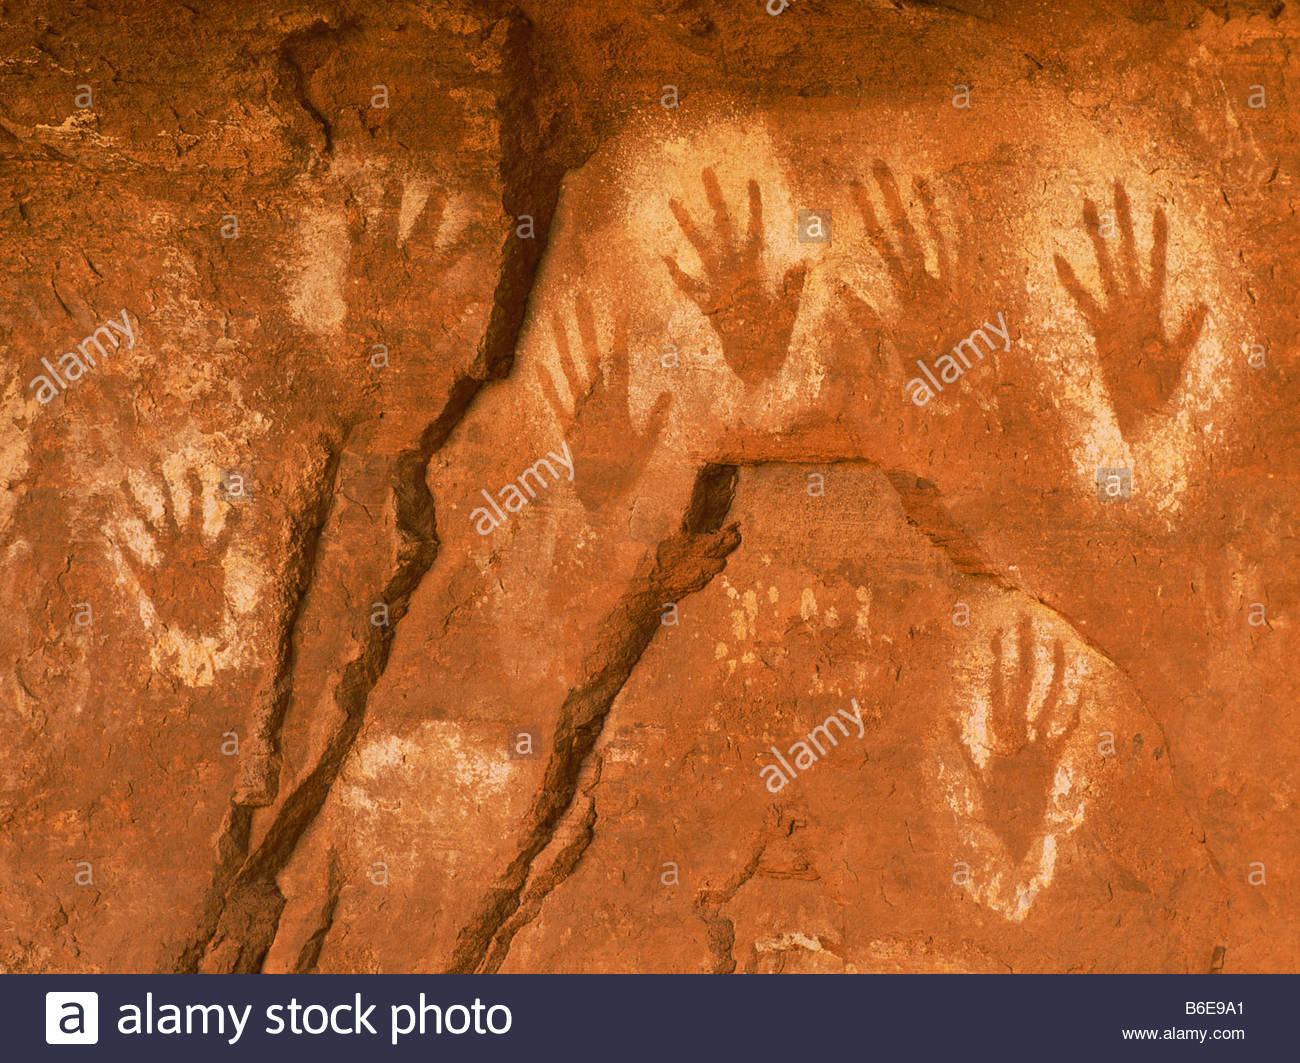 Prehistoric Anasazi culture 'hand prints' pictograph [Canyon de Chelly National Monument] Arizona - Stock Image